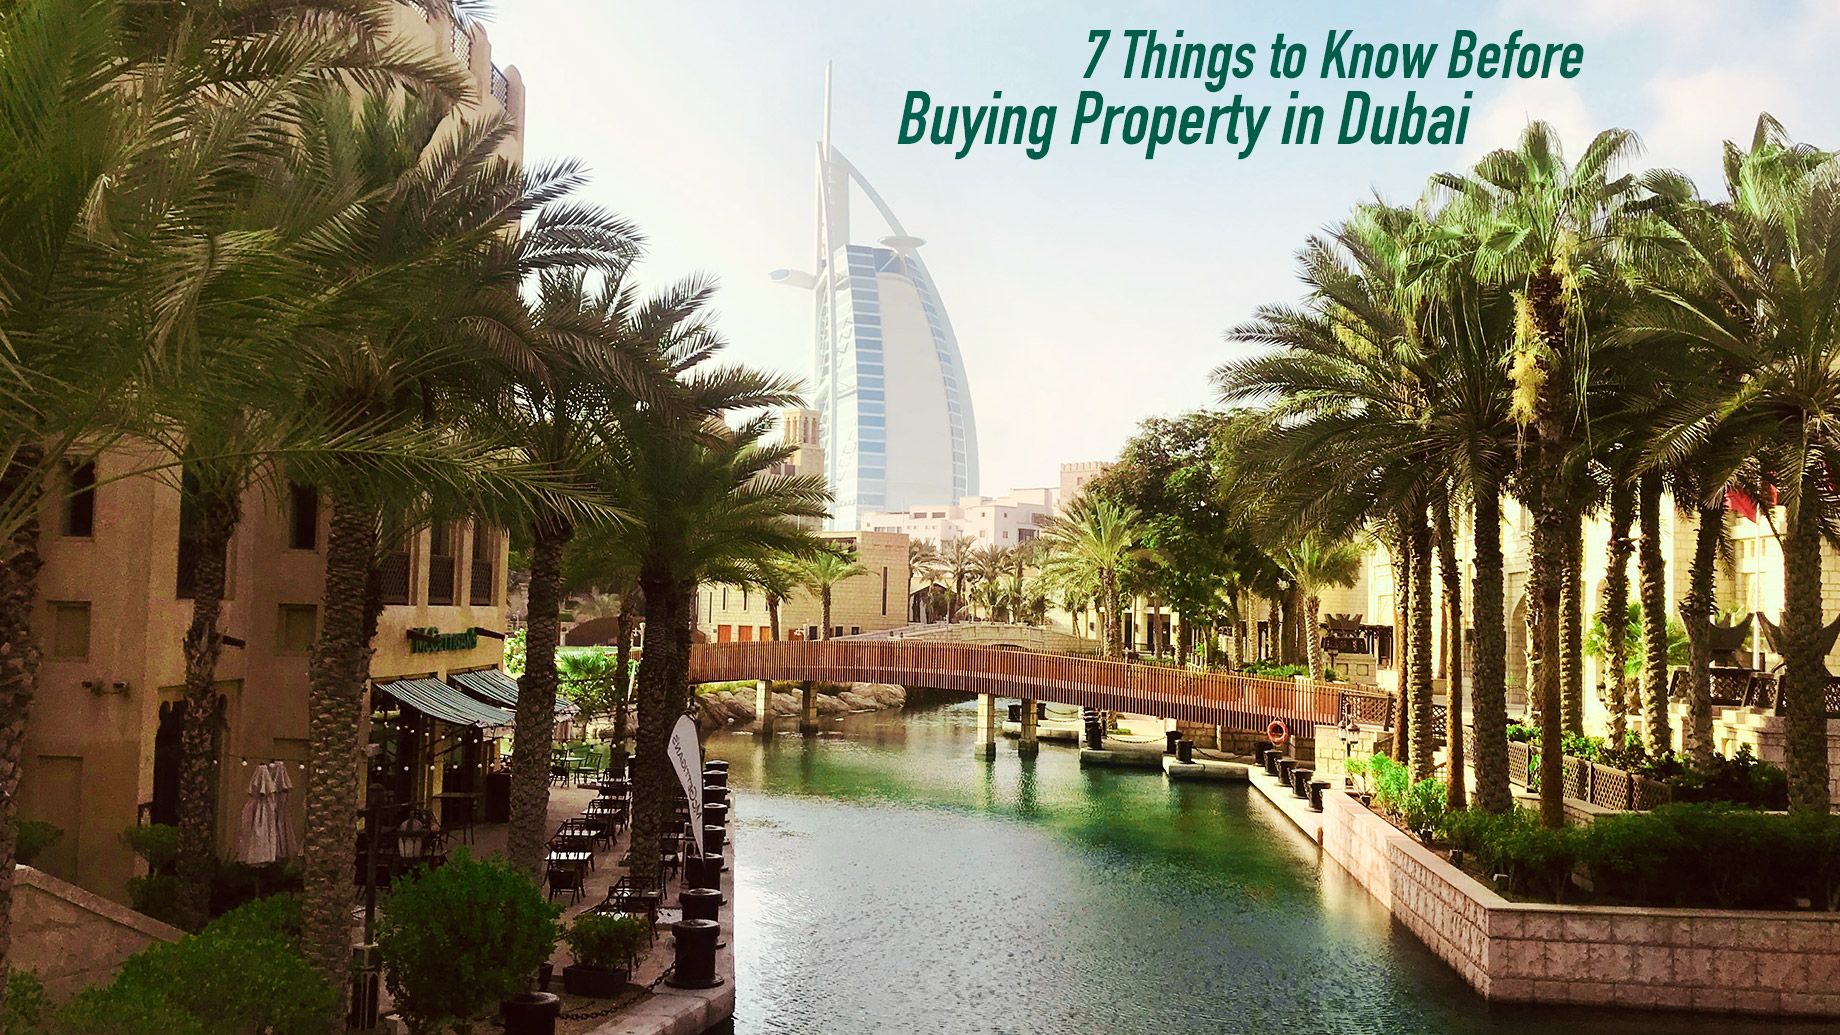 7 Things to Know Before Buying Property in Dubai